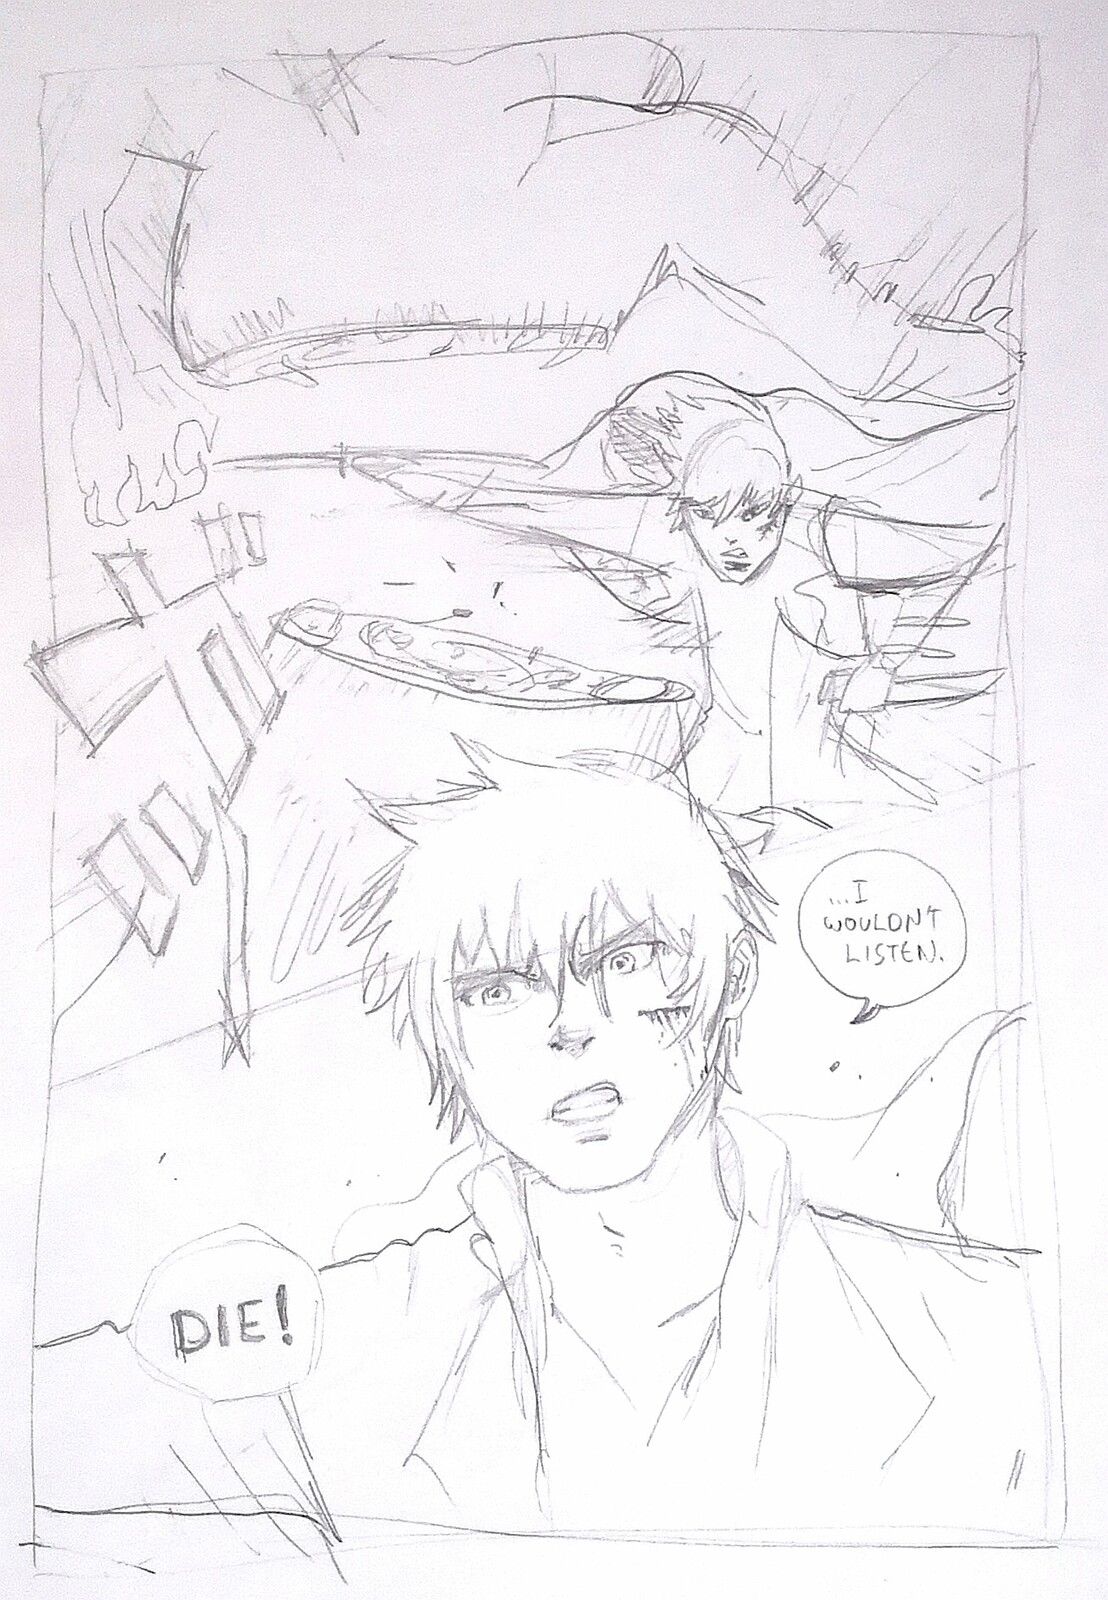 Page 3 (Sketch)